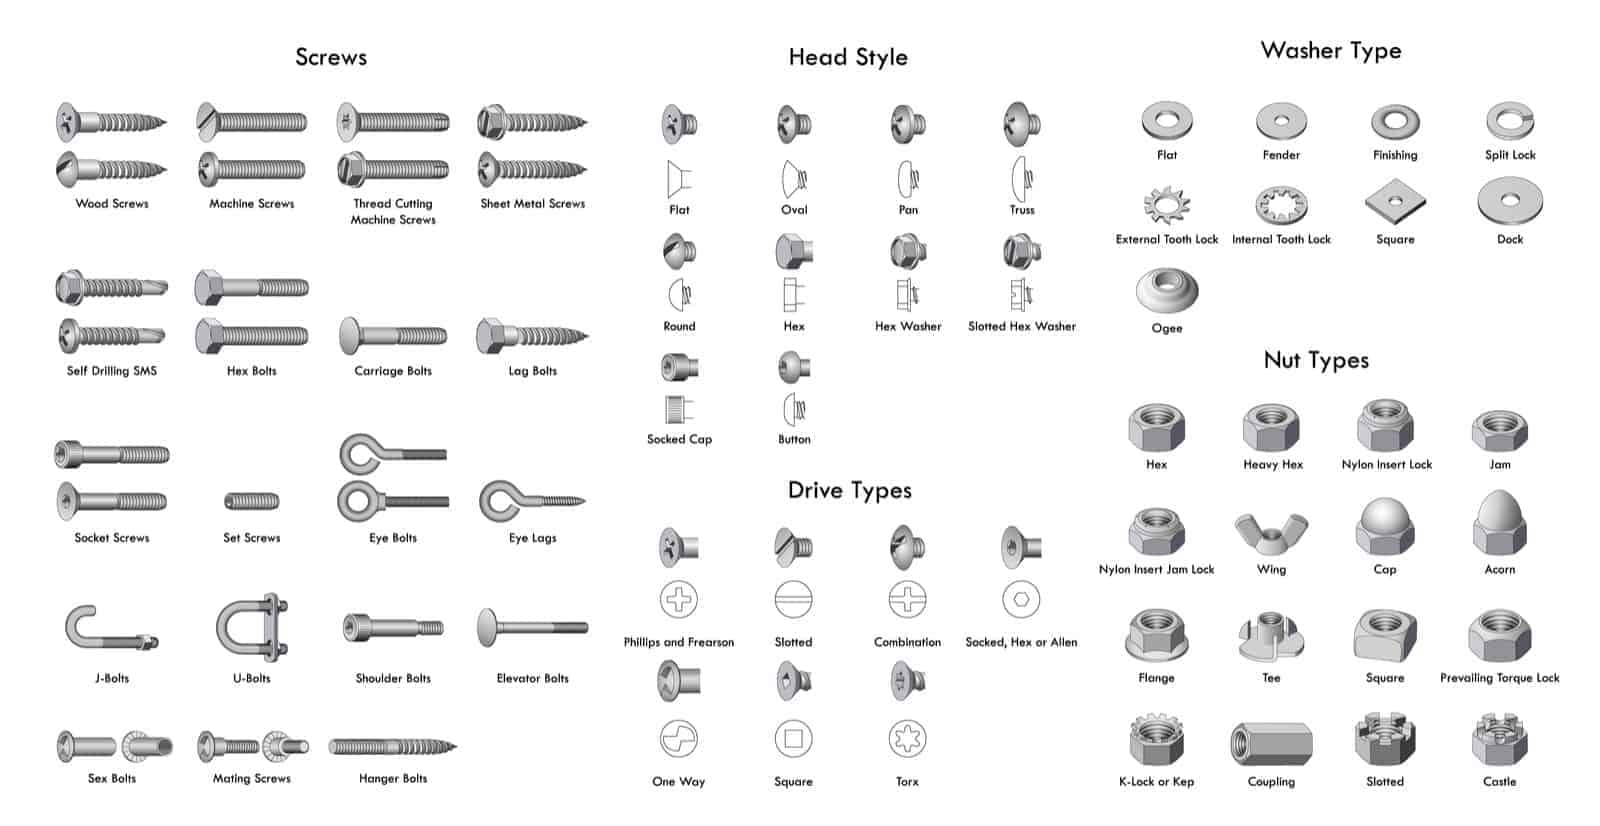 Screws and its types in furniture fittings